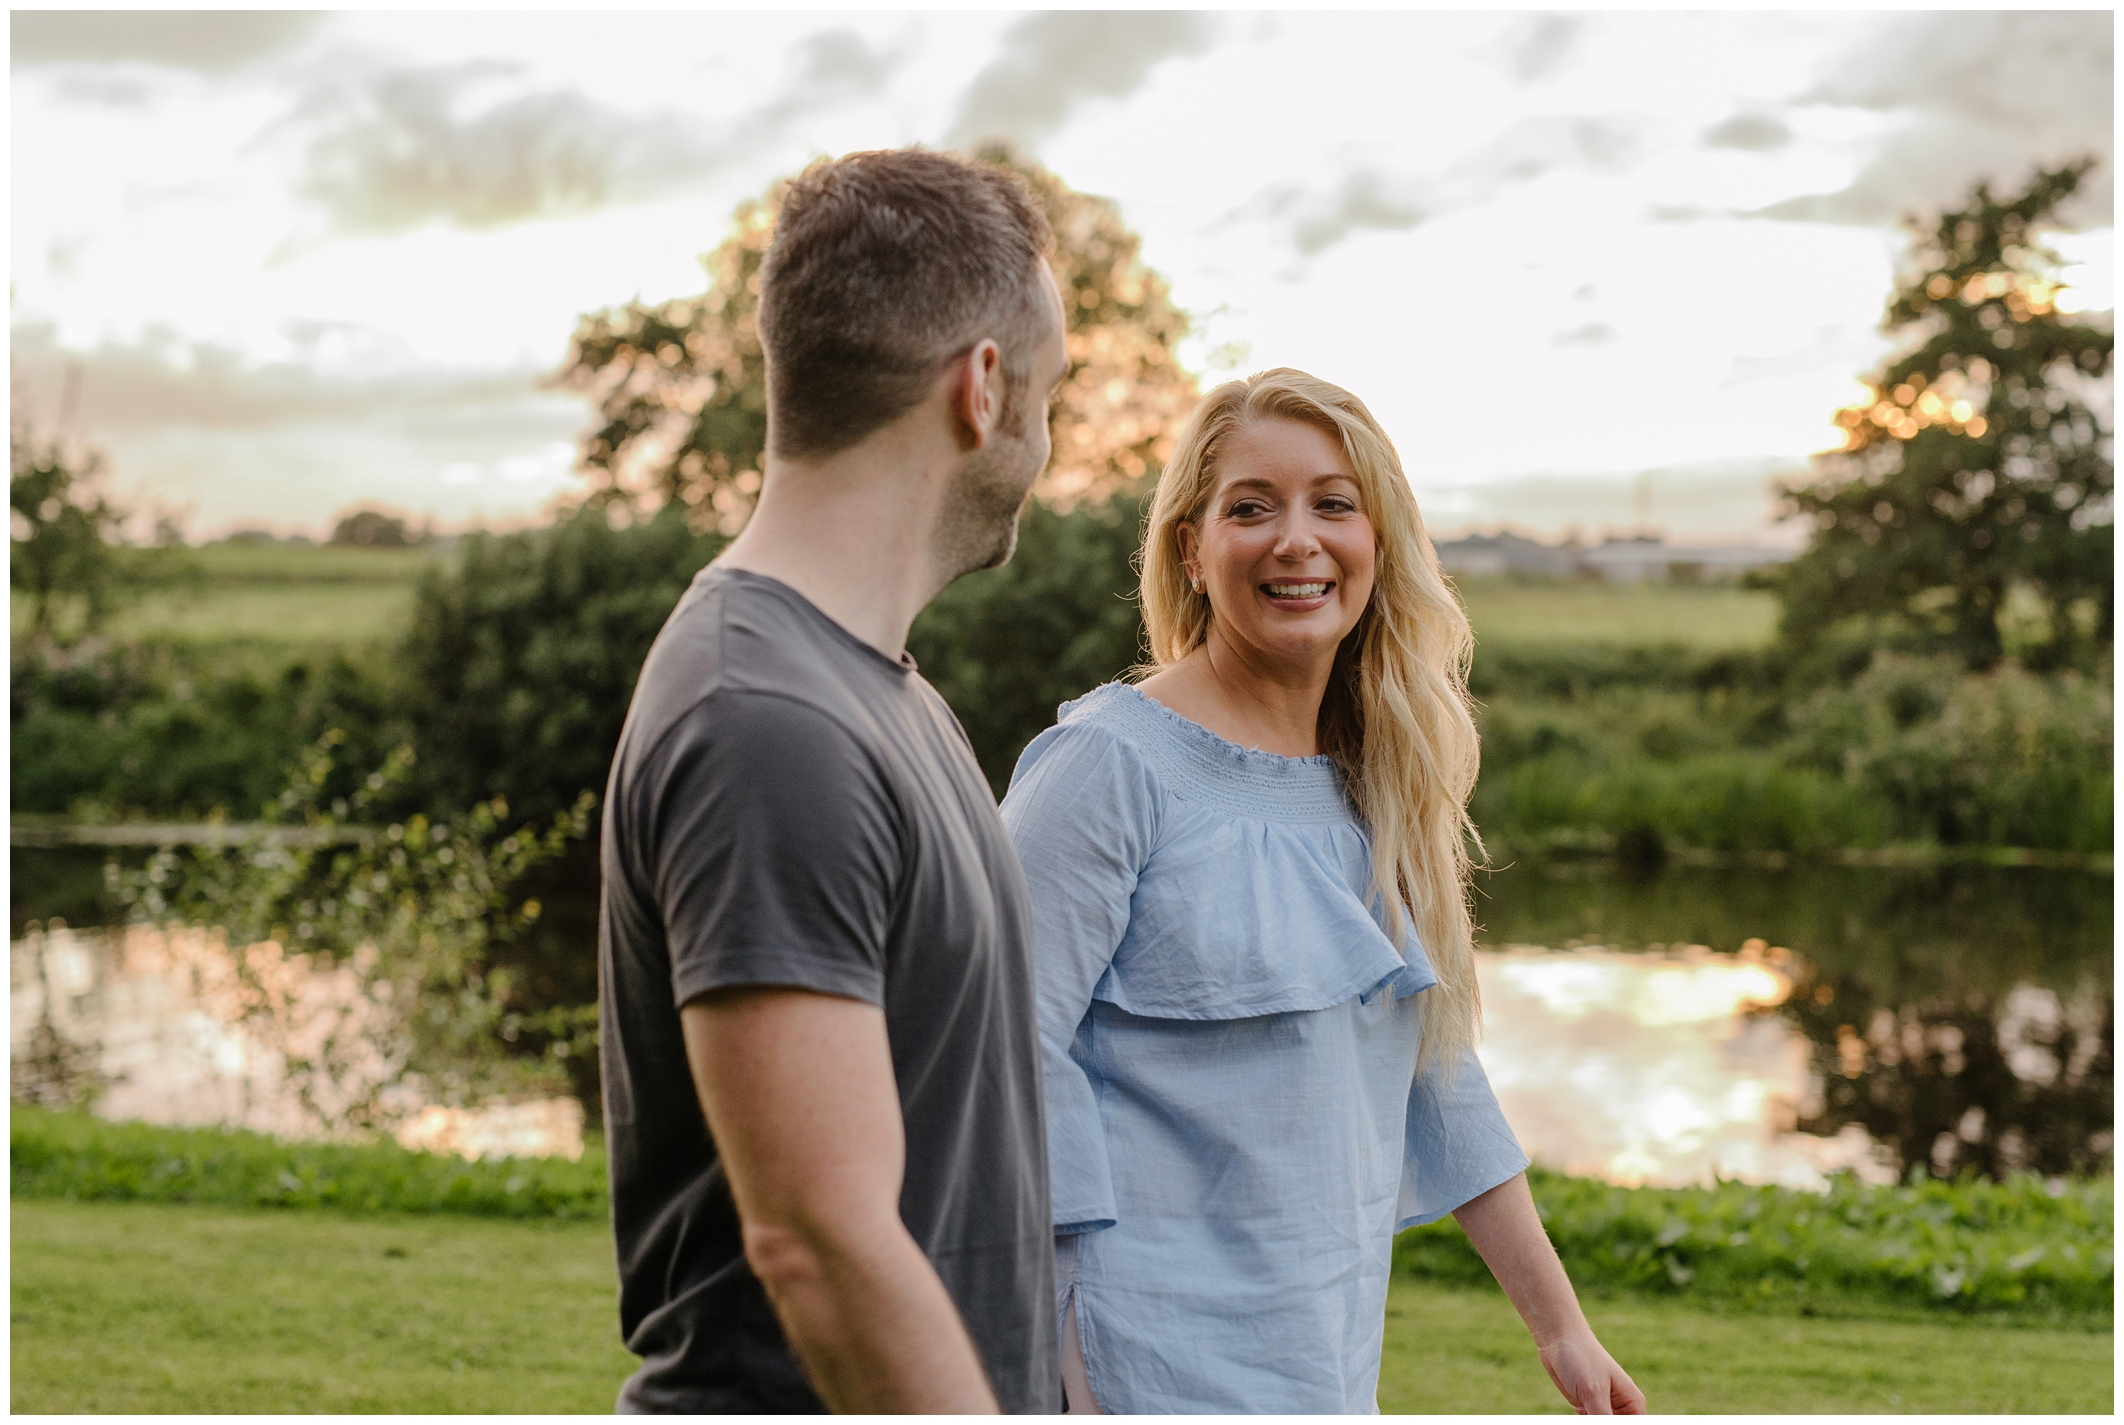 louise_keith_pre_wedding_armagh_jude_browne_photography_0015.jpg